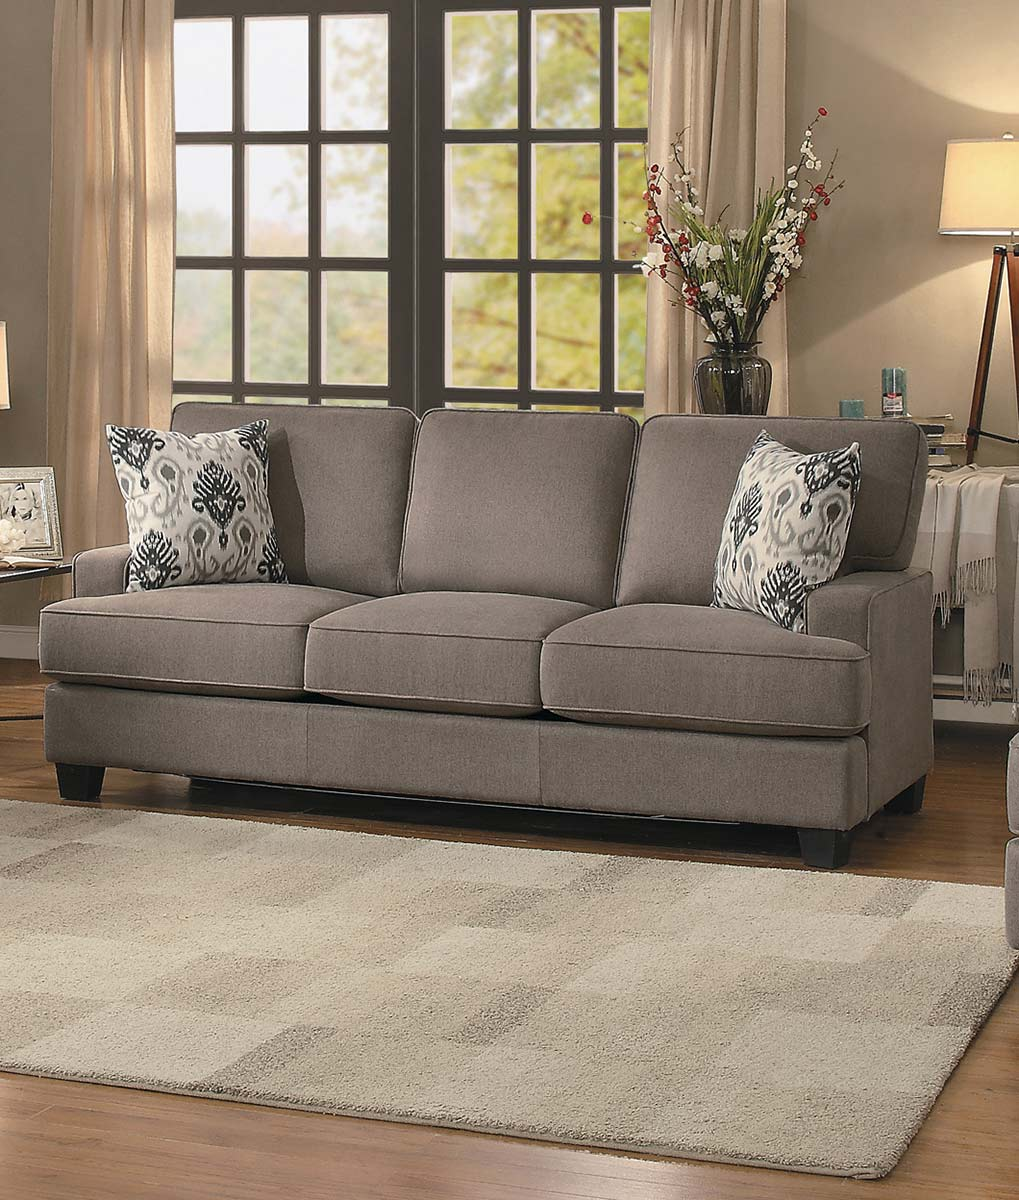 Homelegance kenner sofa brown fabric 8245br 3 at for Home decor kenner